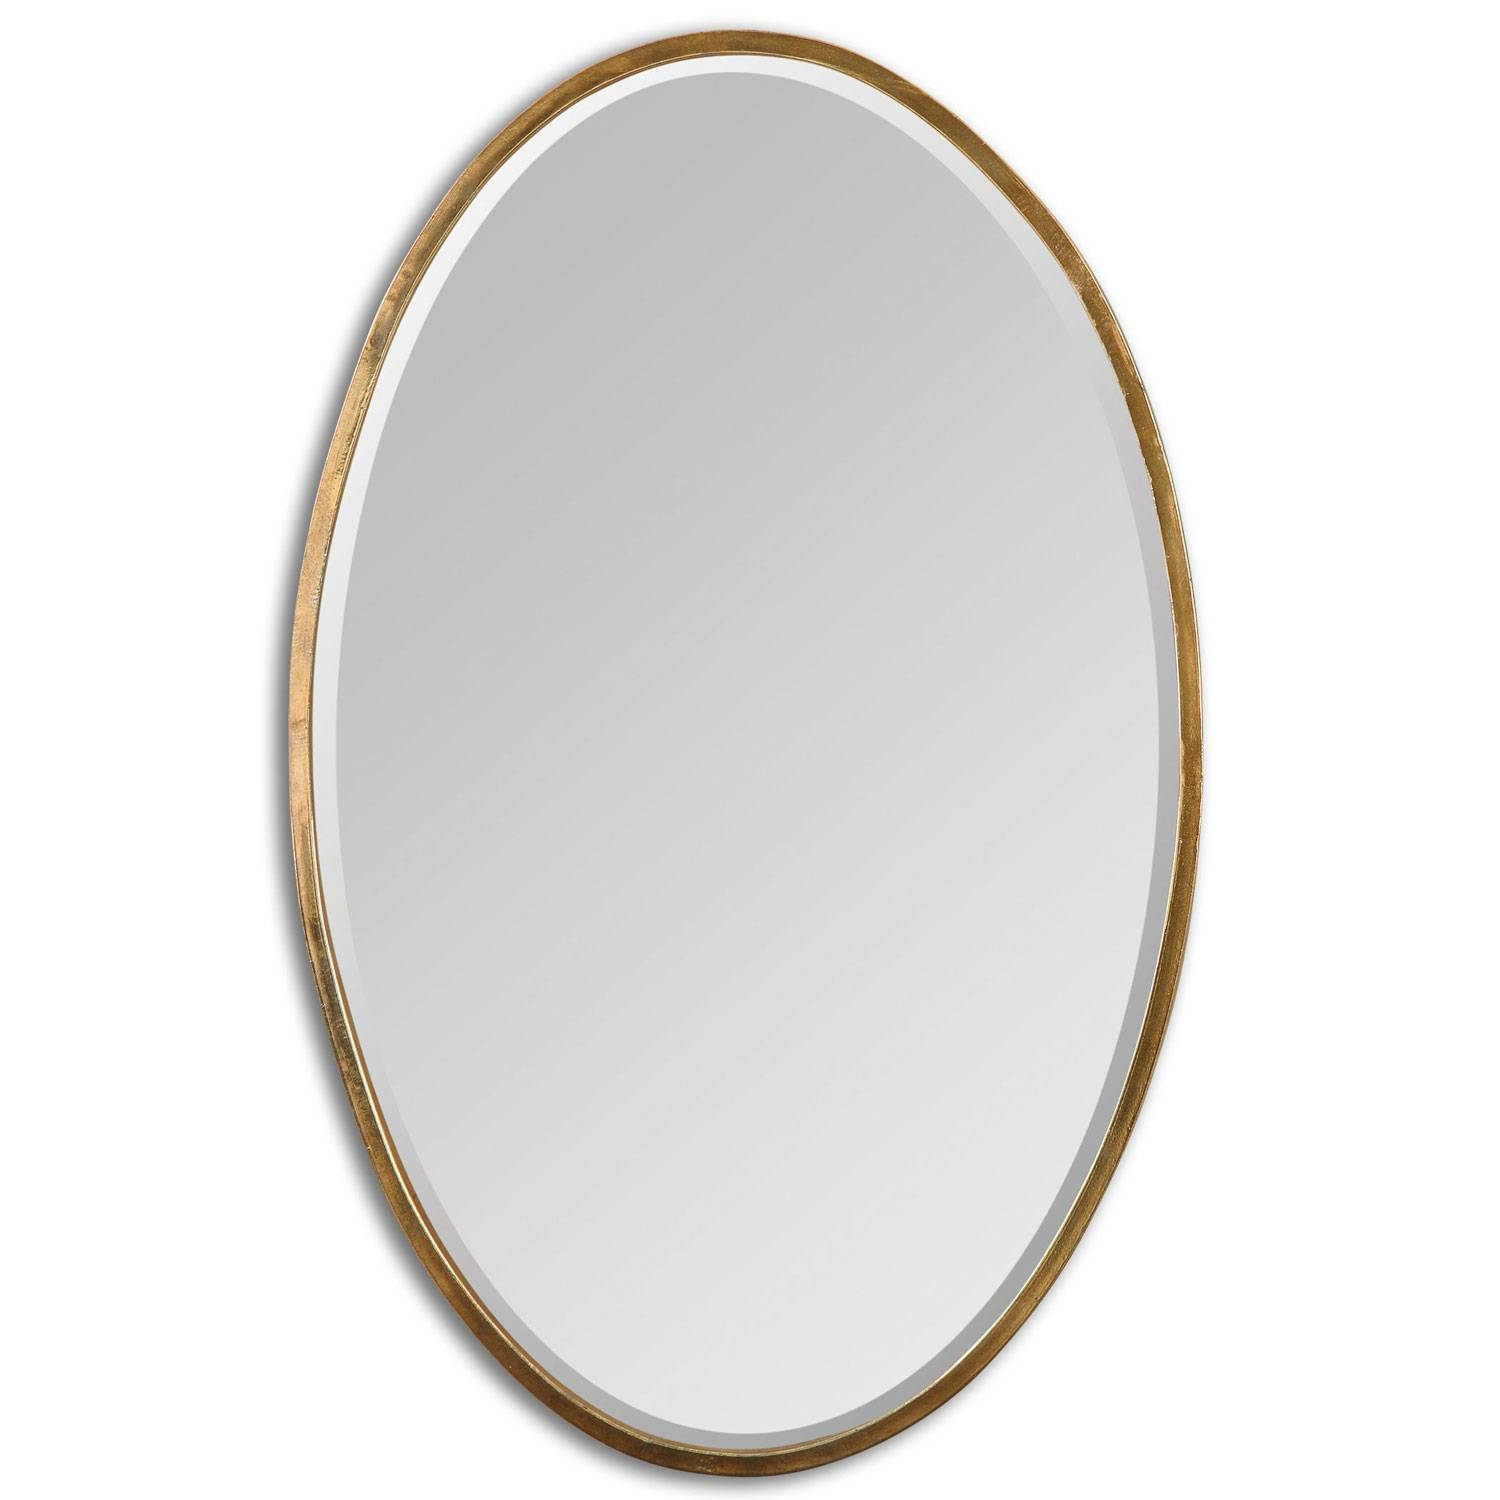 Herleva Oval Antique Gold Oval Mirror Uttermost Wall Mirror intended for Triple Oval Mirrors (Image 10 of 25)